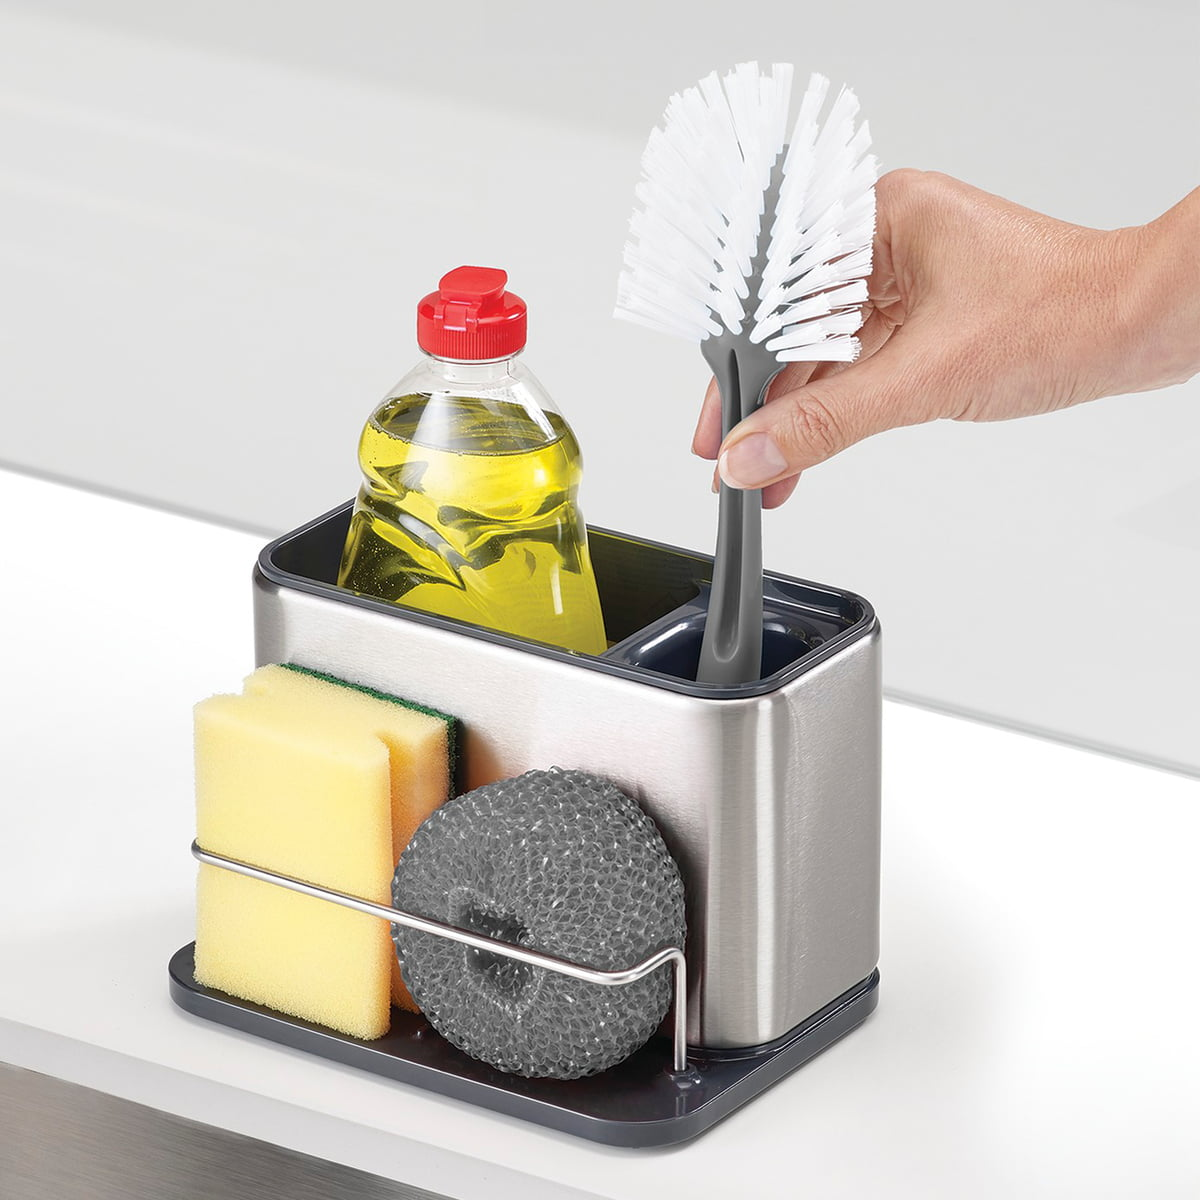 Kitchen Sink Soap Caddy